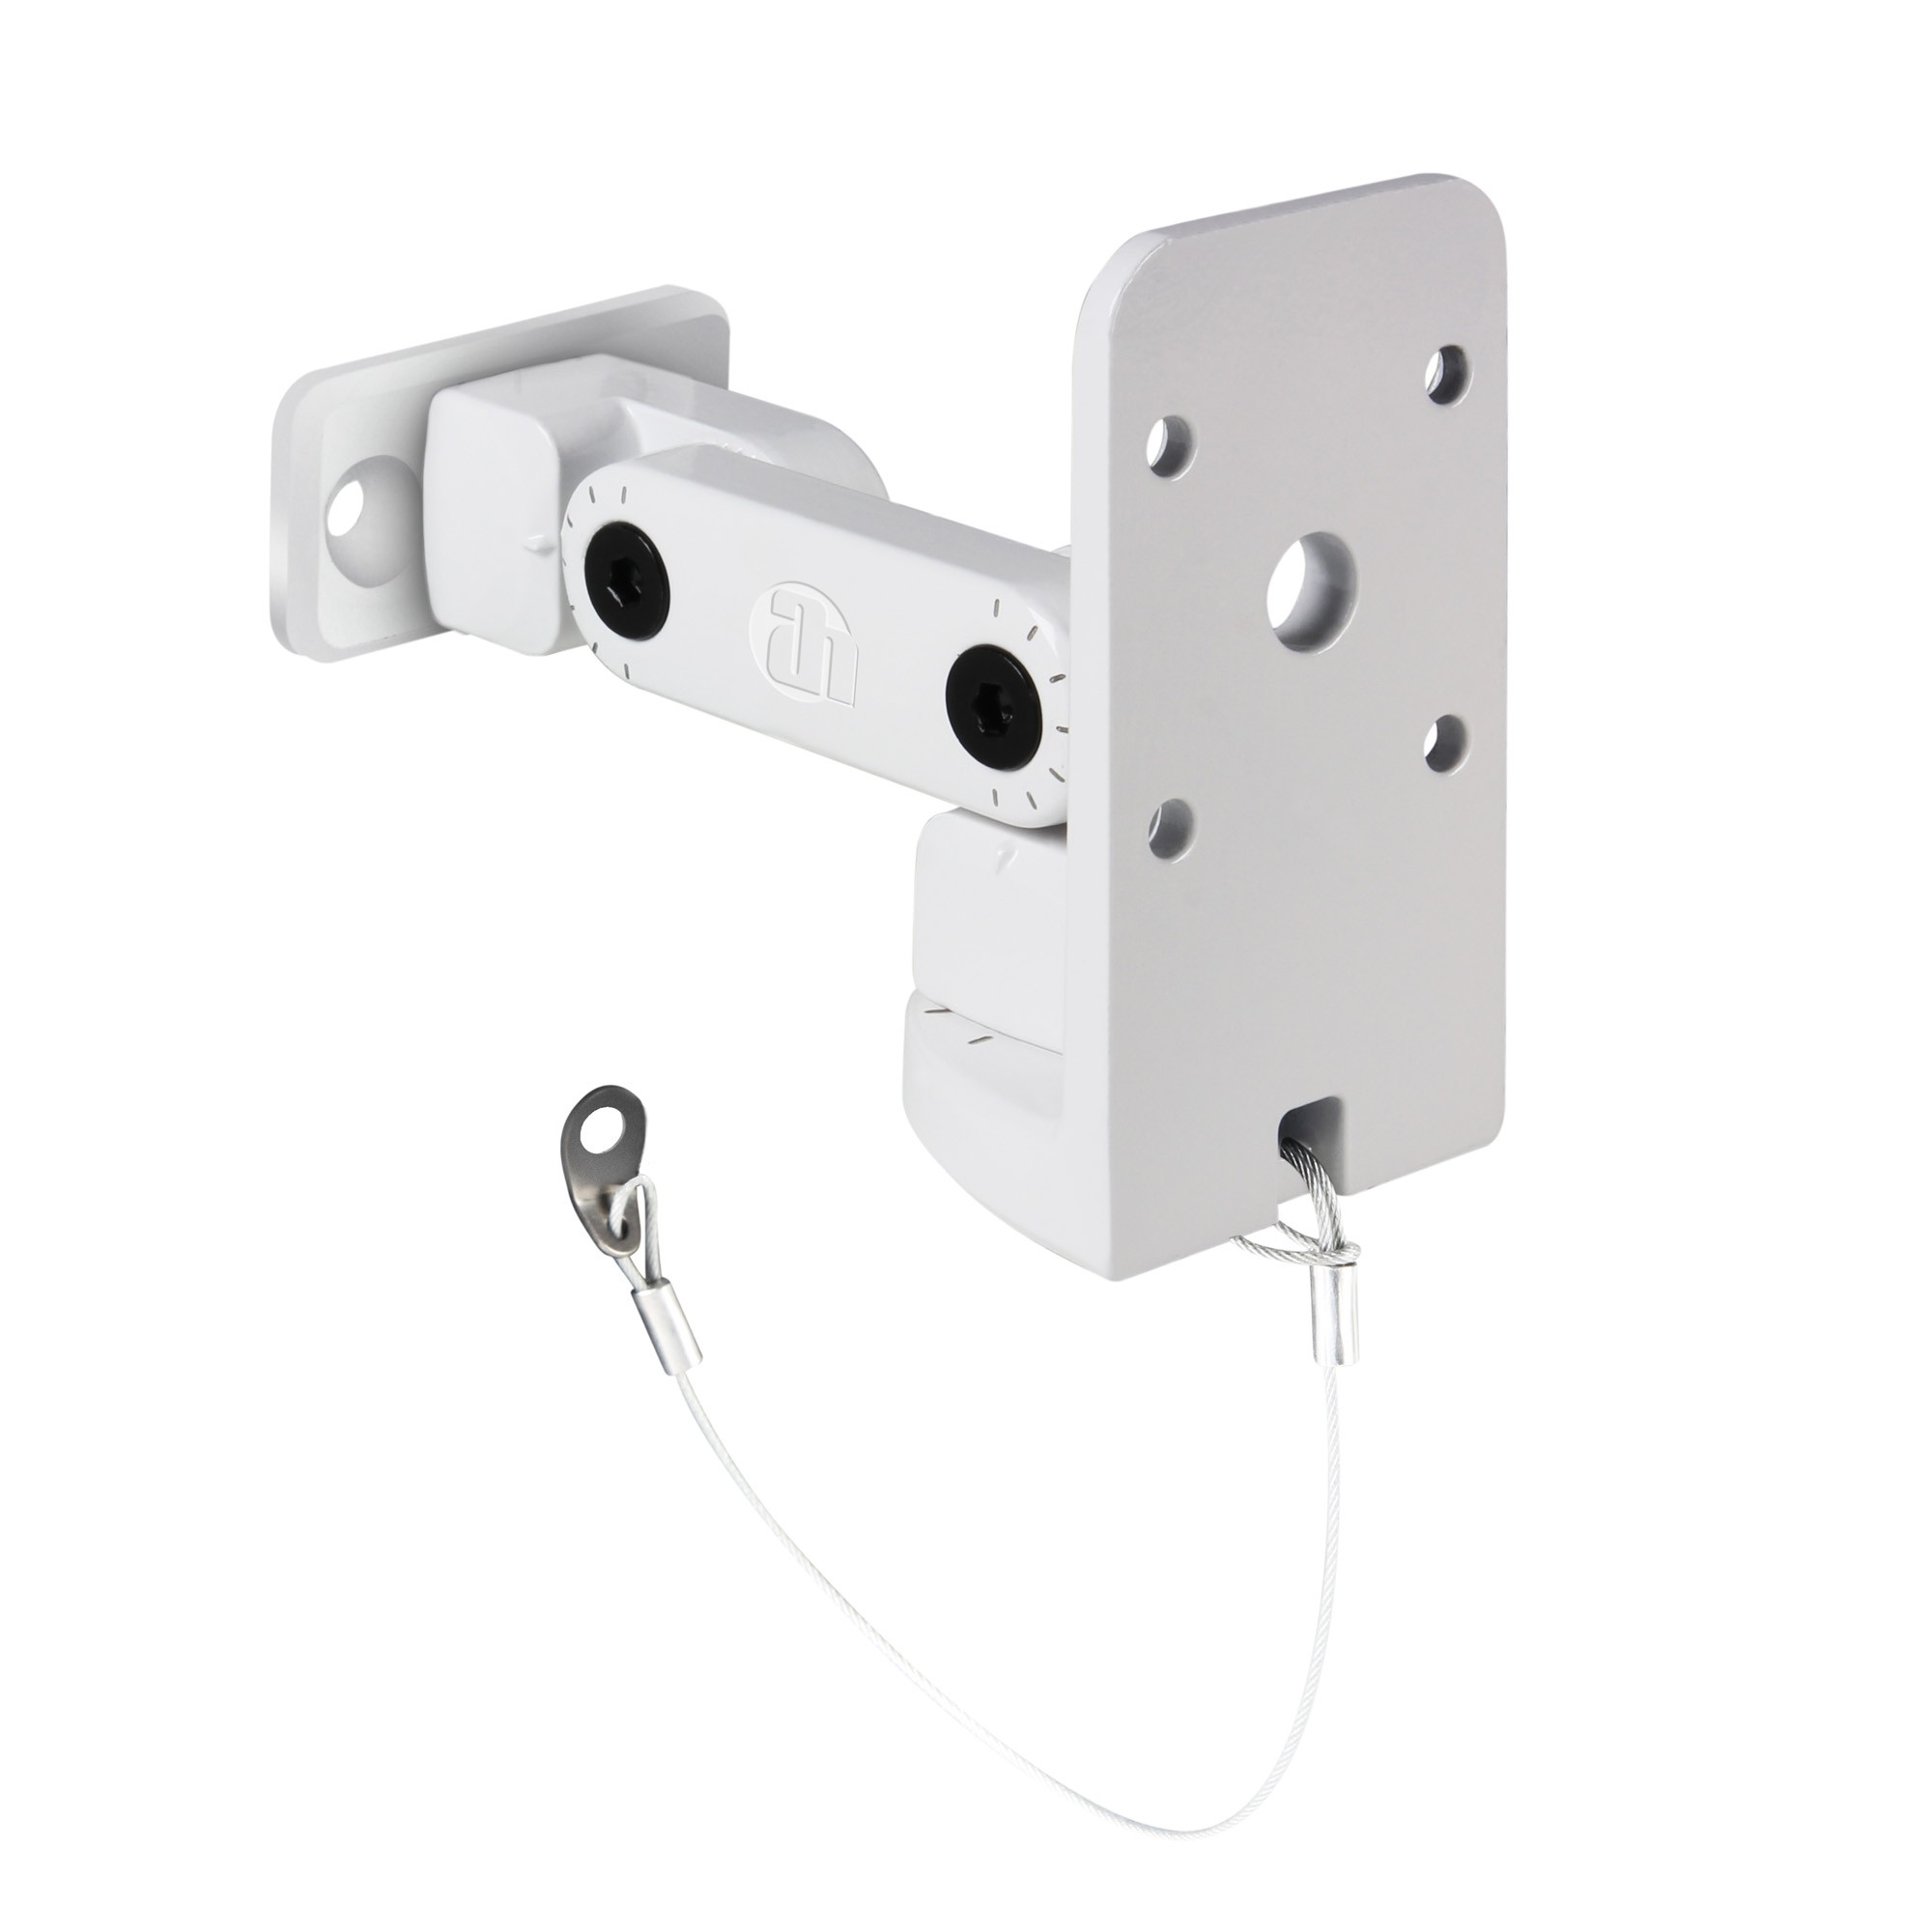 CURV 500 WMB W Wall mounting bracket for CURV 500® satellites white